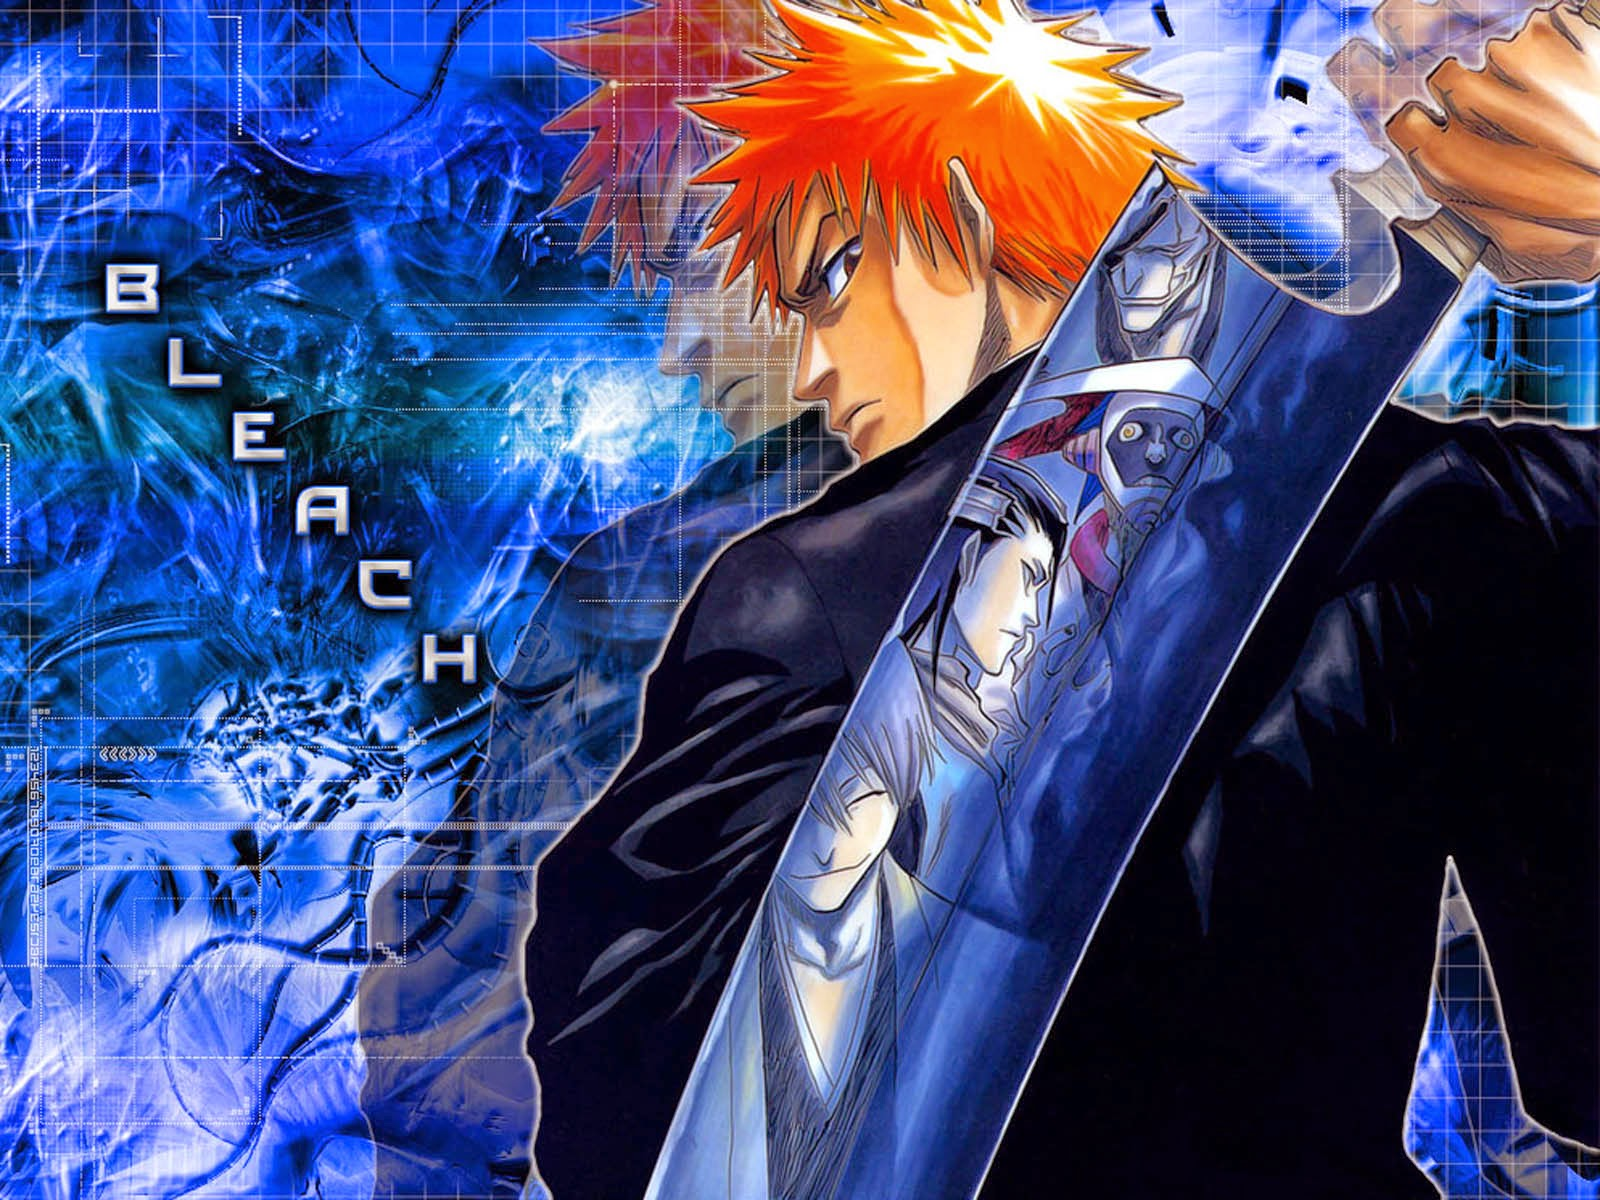 http://life-wallpaper.blogspot.com/2014/11/download-hd-bleach-wallpaper.html